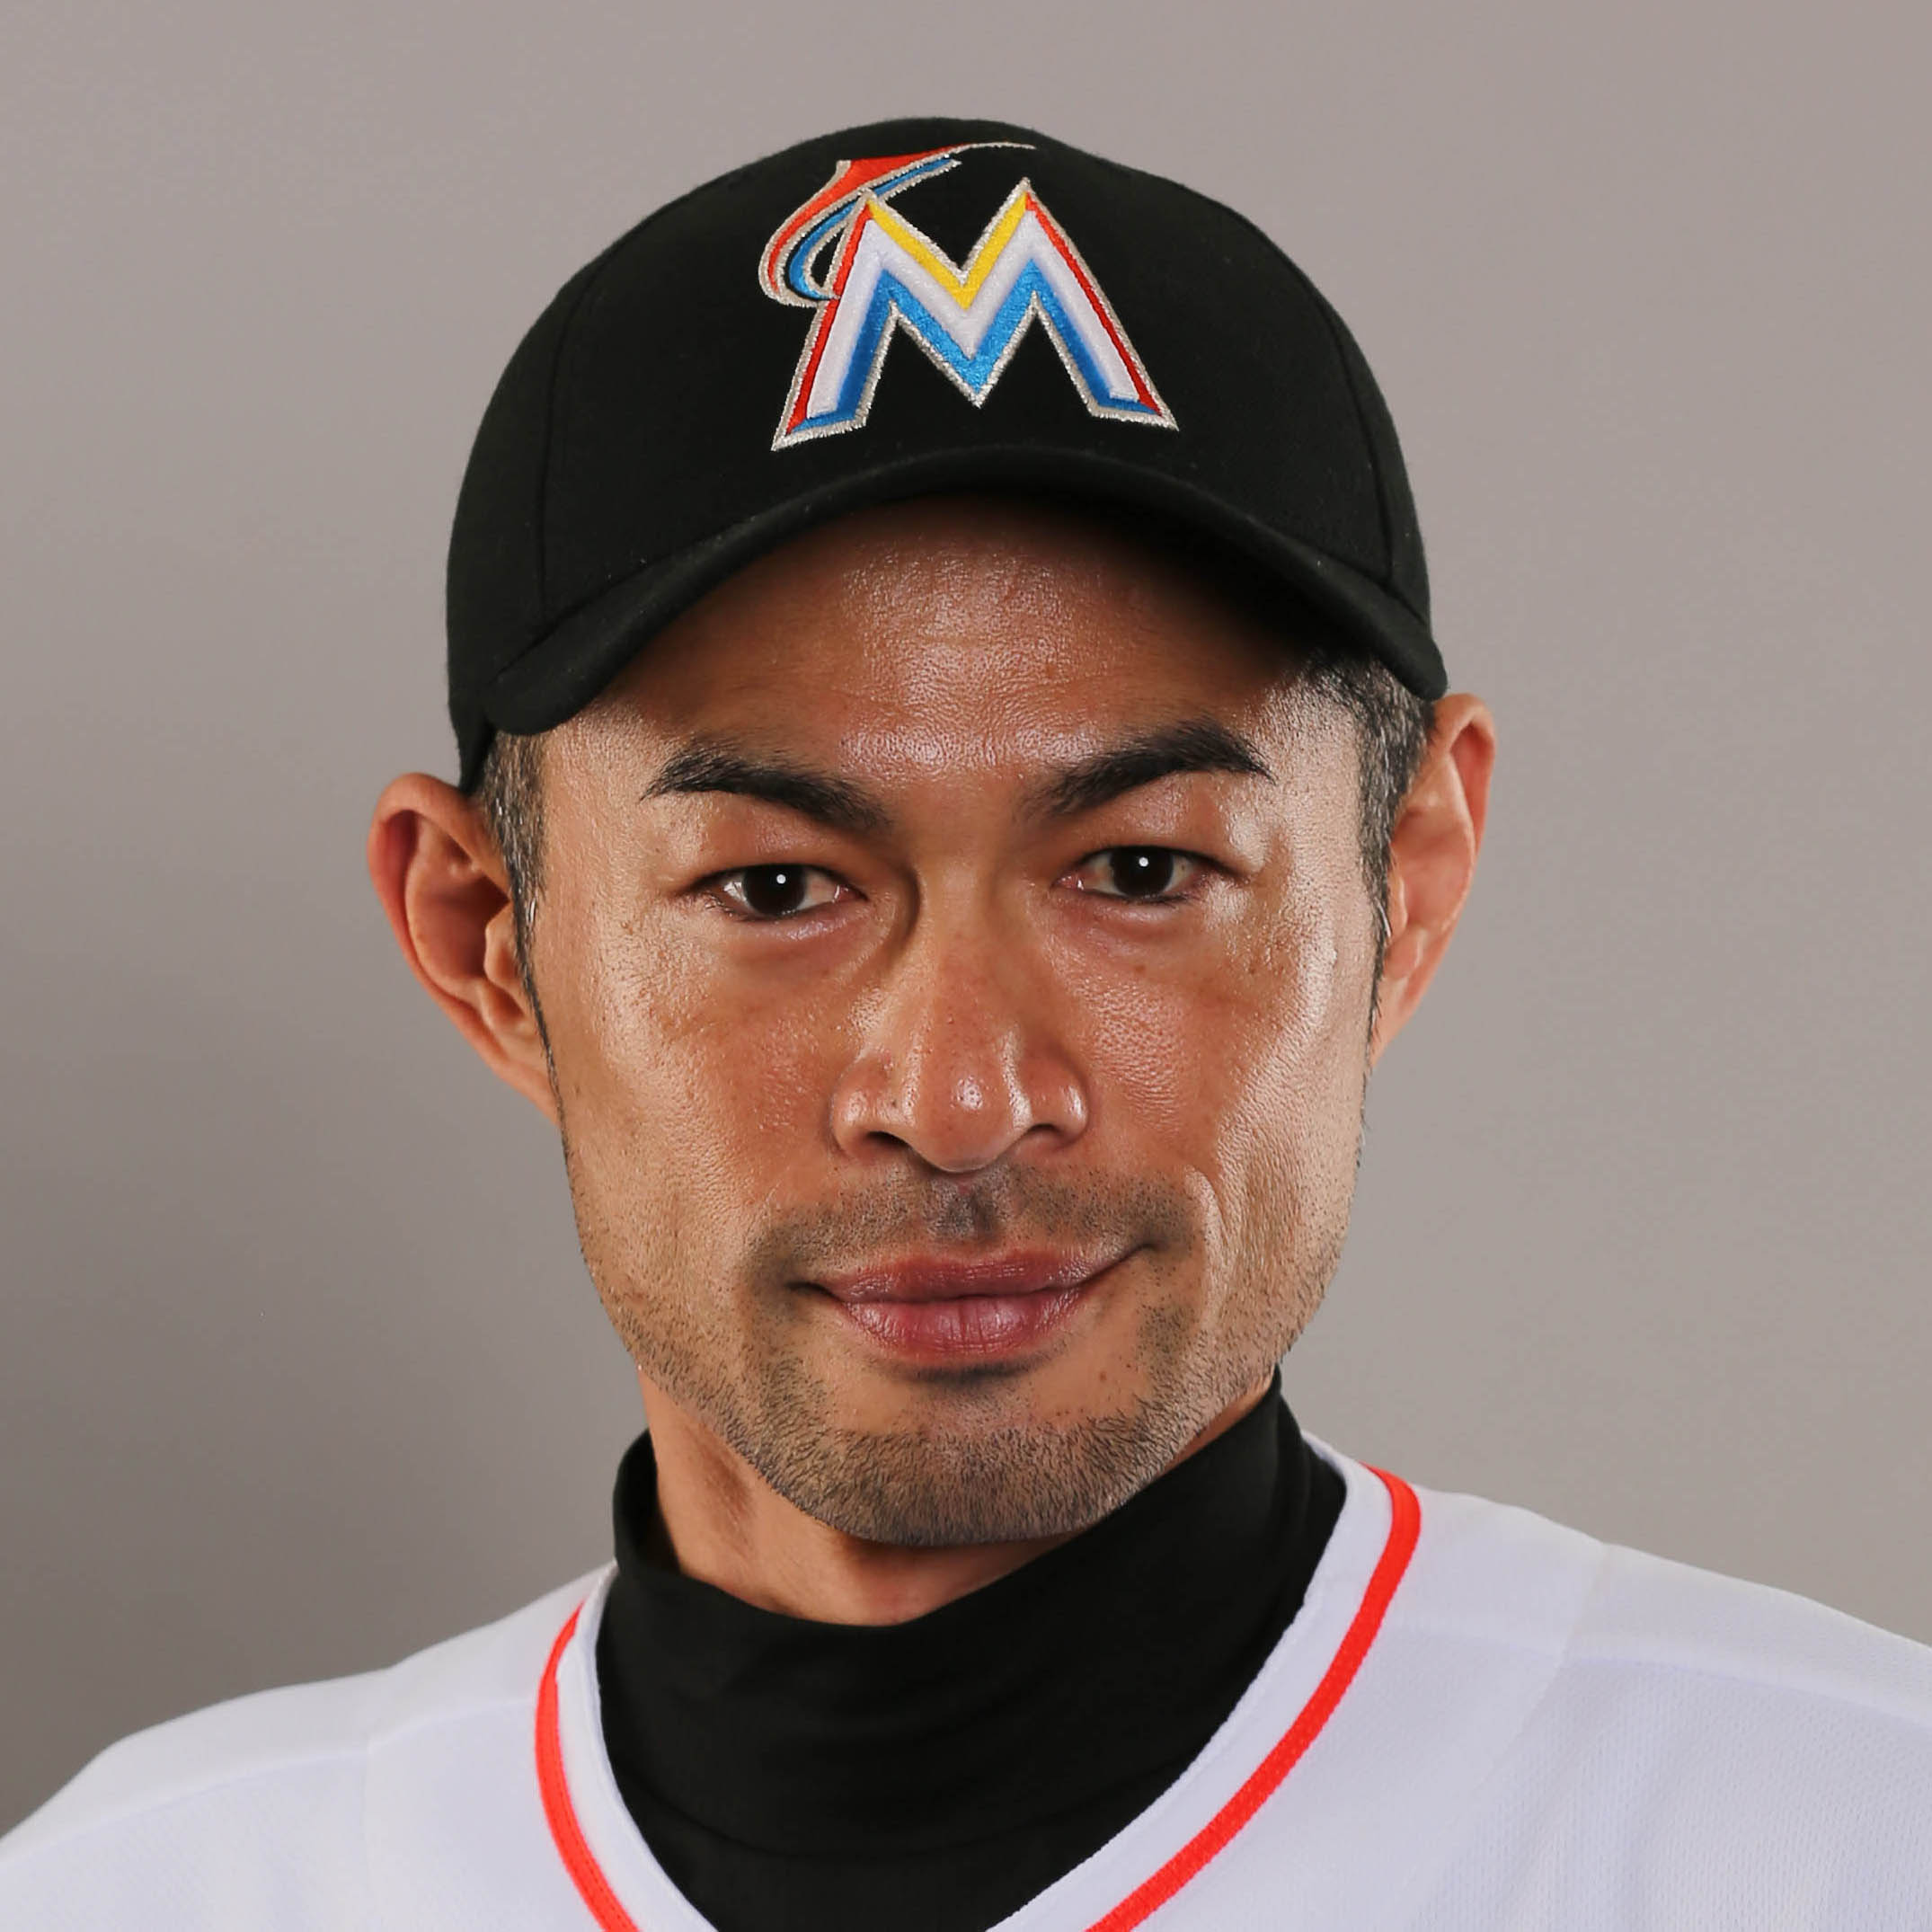 This is what Ichiro looked like when he played in the Japanese Pacific League, only younger.